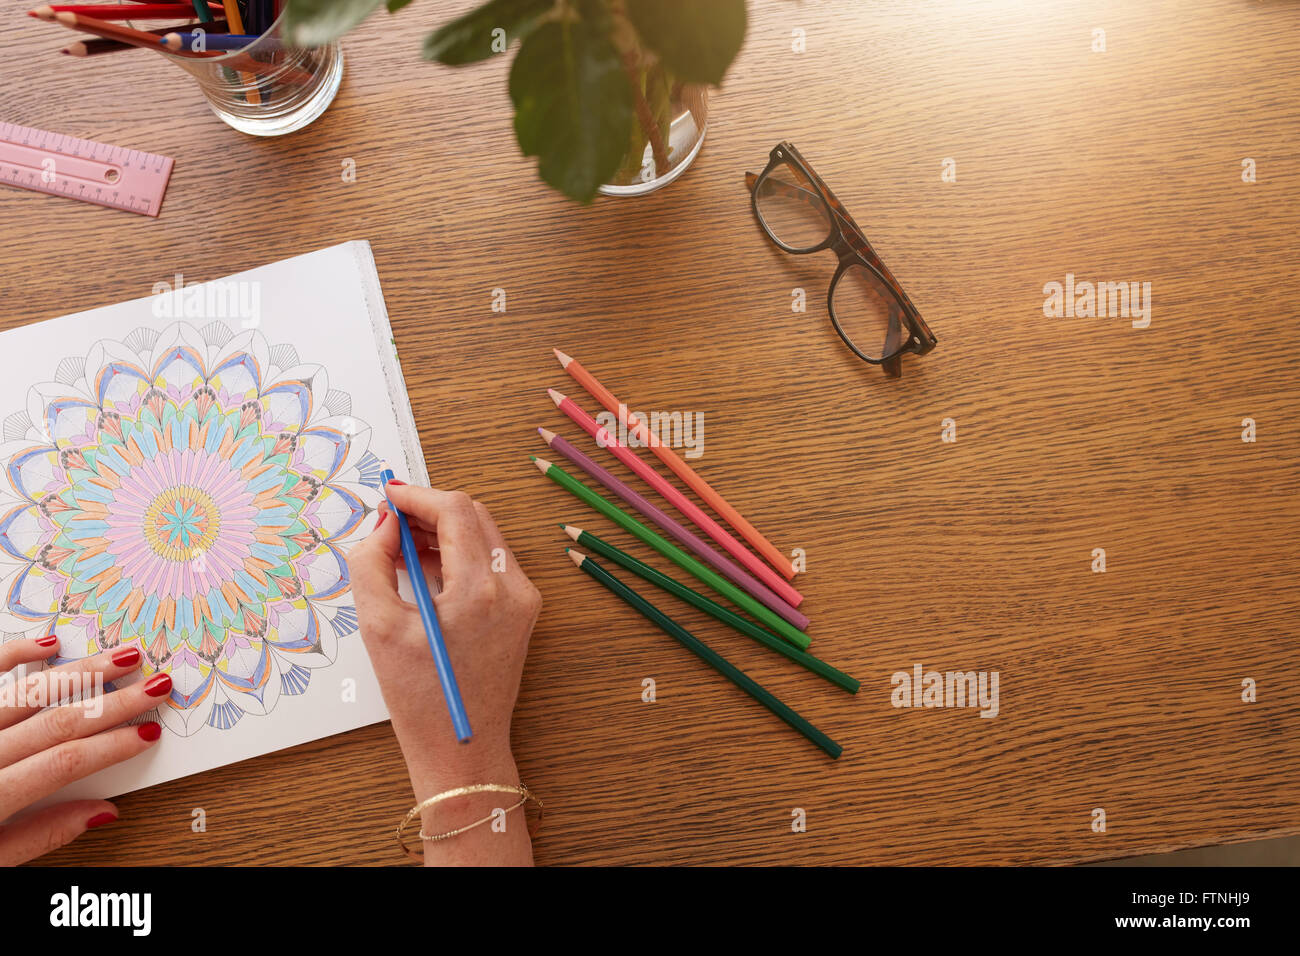 Close up image of female hands drawing in adult colouring book on a table at home. - Stock Image